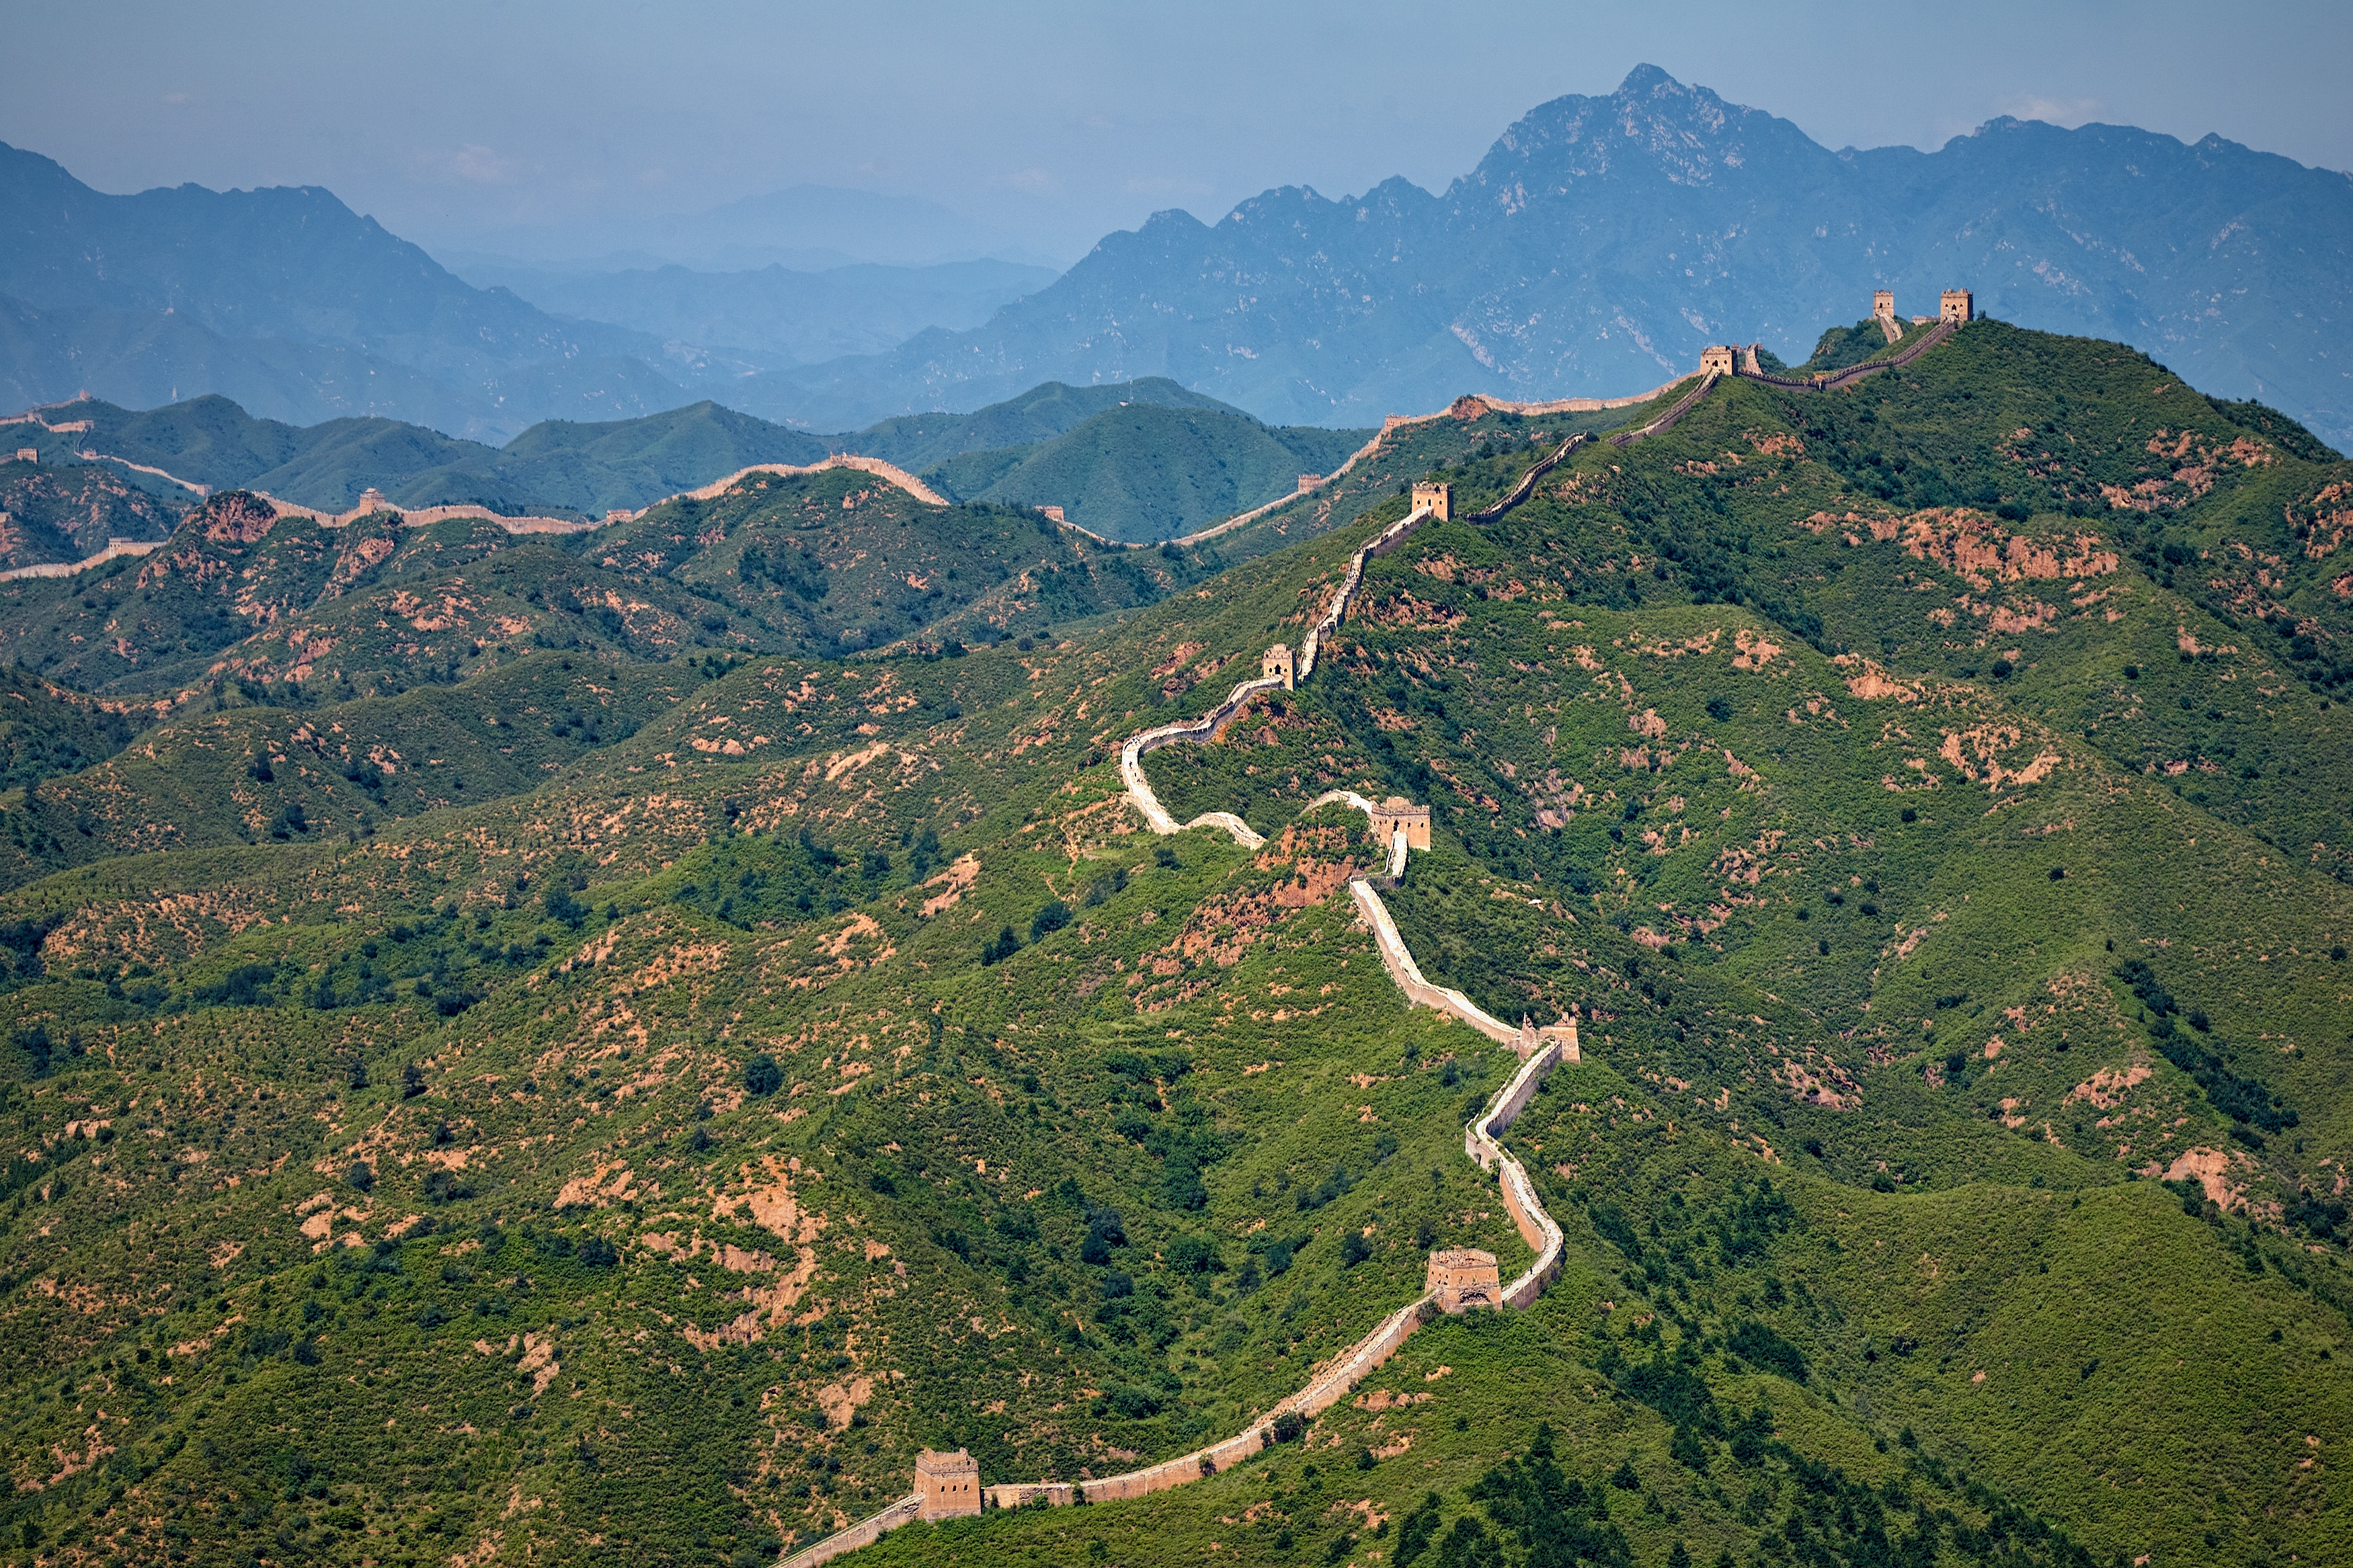 The Great Wall of China